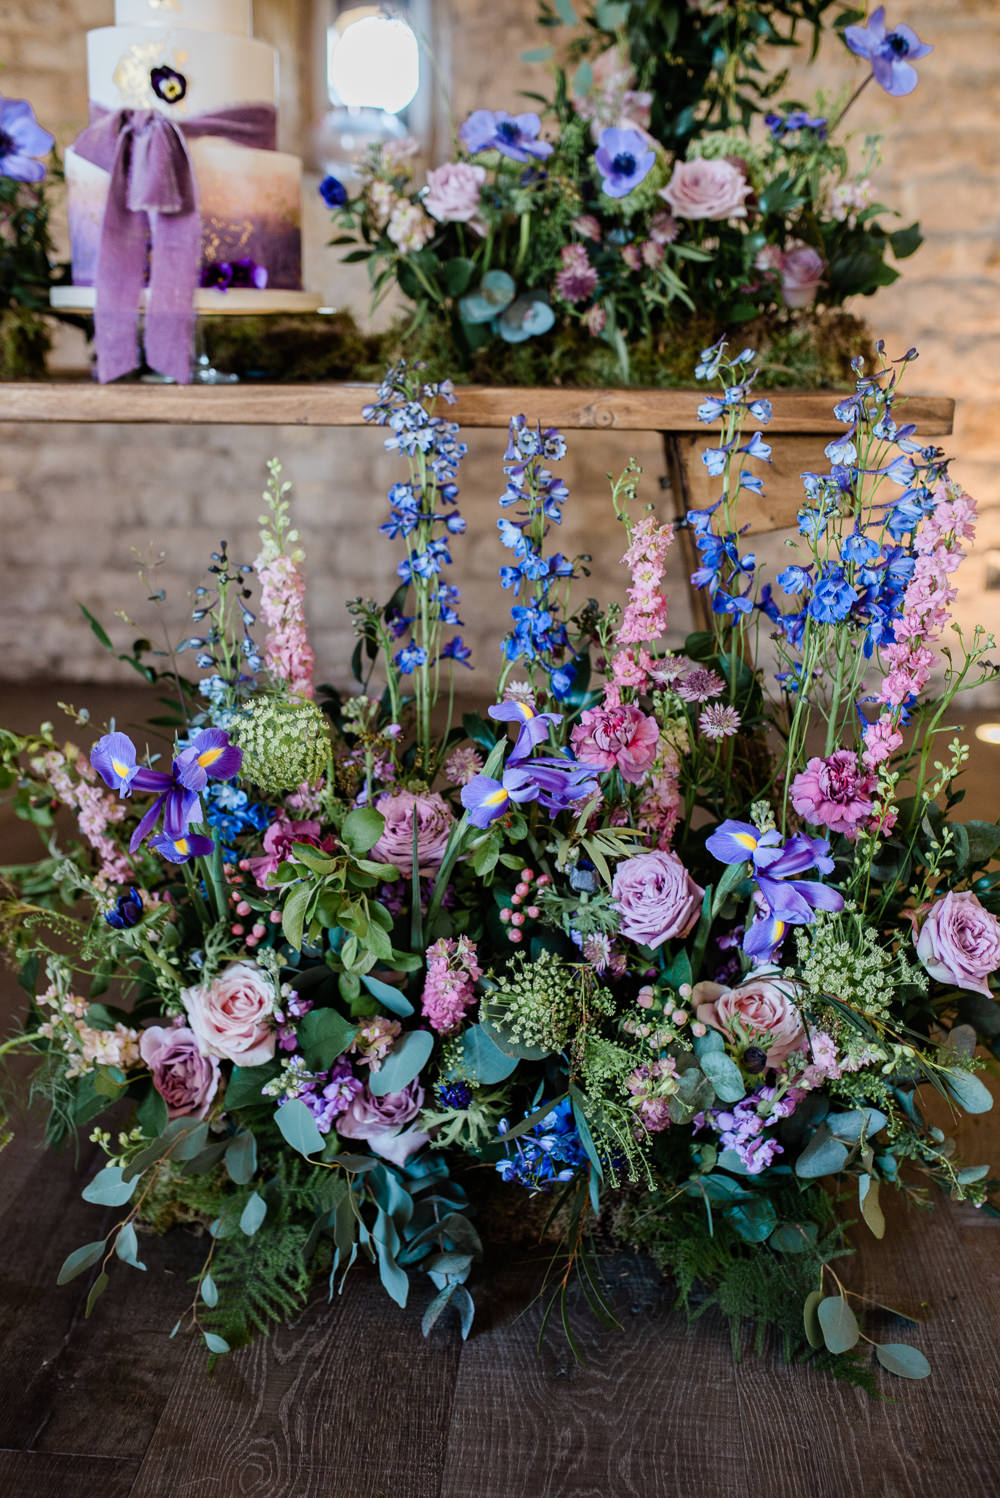 Iris Rose Delphiniums Backdrop Lilac Greenery Hoop Wreath Foliage Table Meadow Purple Ultra Violet Wedding Moon Gate Flower Arch Captured by Katrina Photography